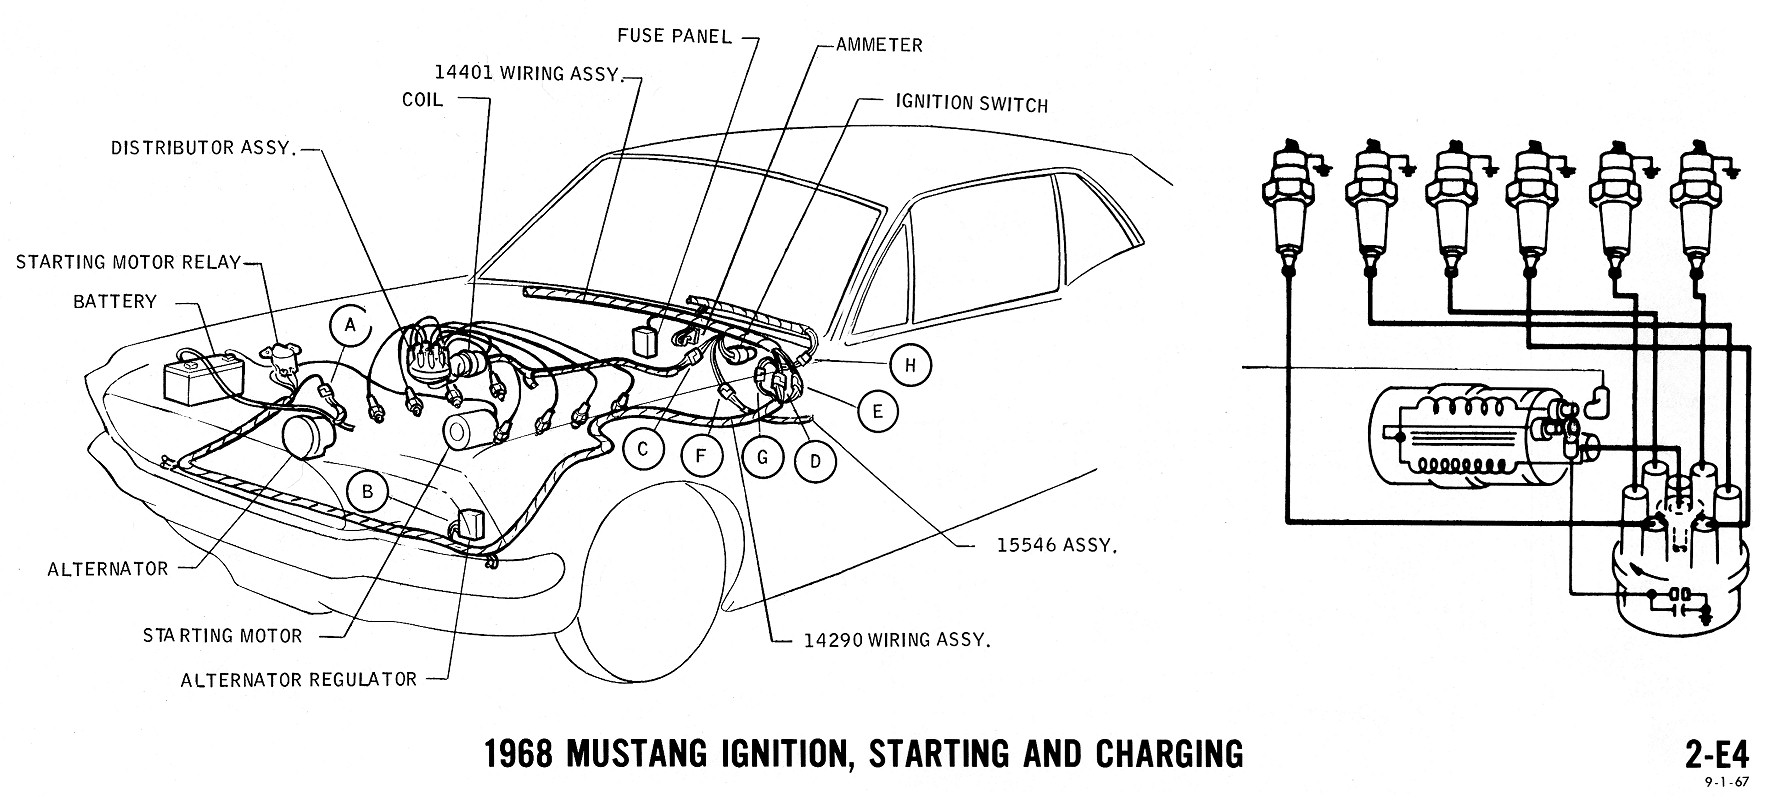 ford mustang ignition wiring diagram images 1967 mustang wiper motor wiring diagram on 1967 mustang wiring